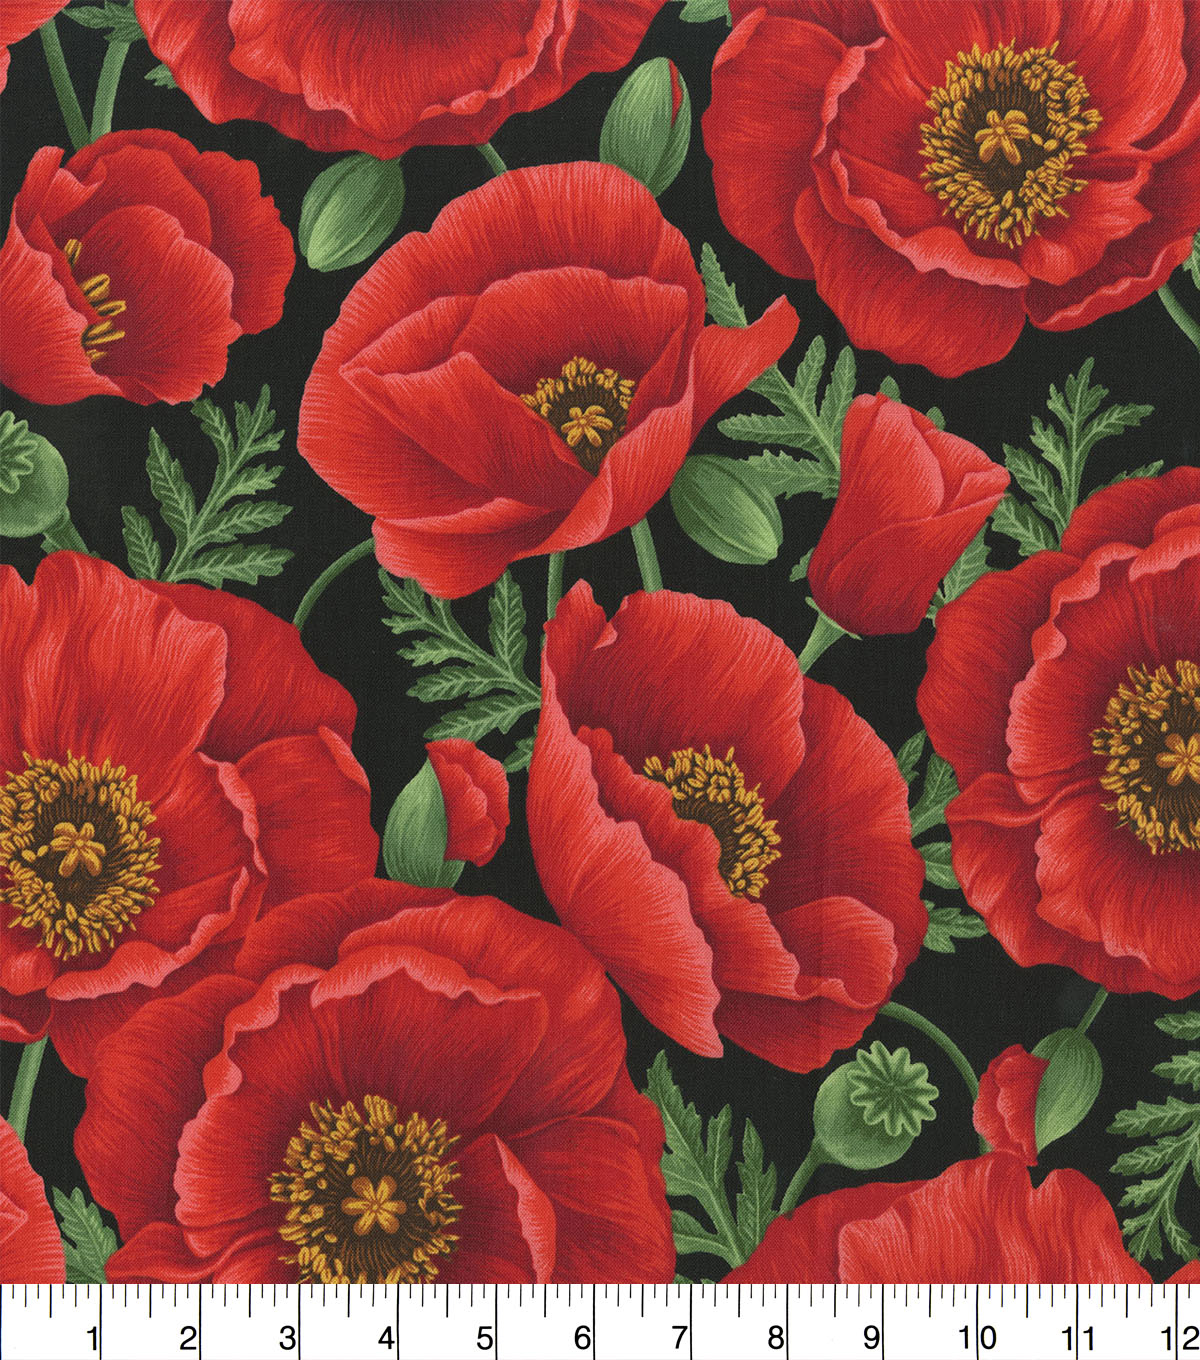 Premium Cotton Fabric-Bold Red Poppies on Black